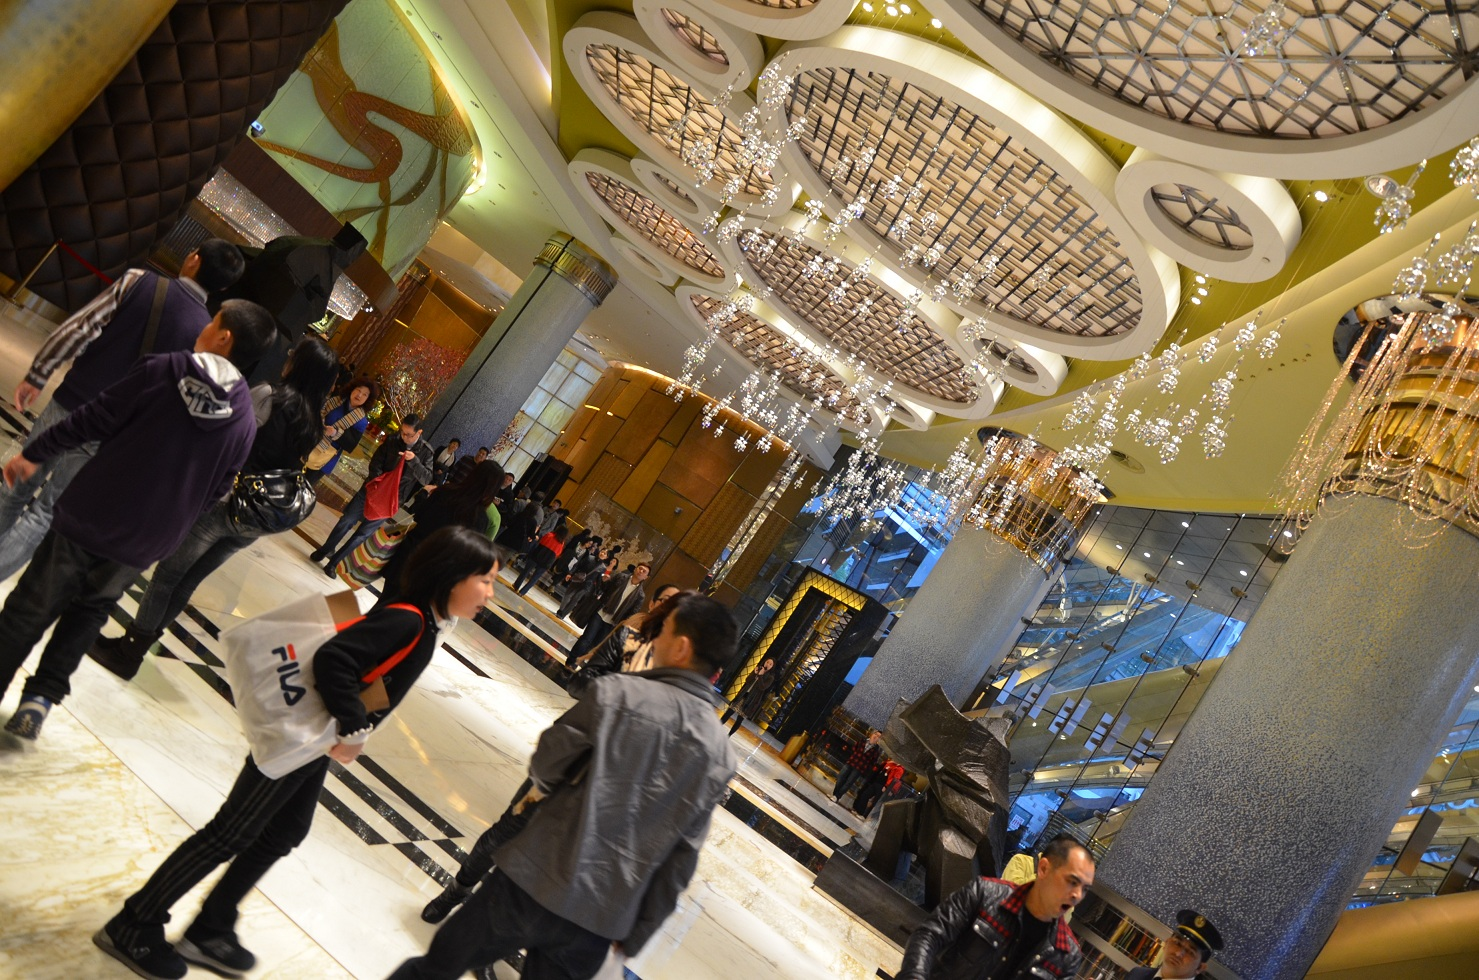 Grand Lisboa hall - Macau